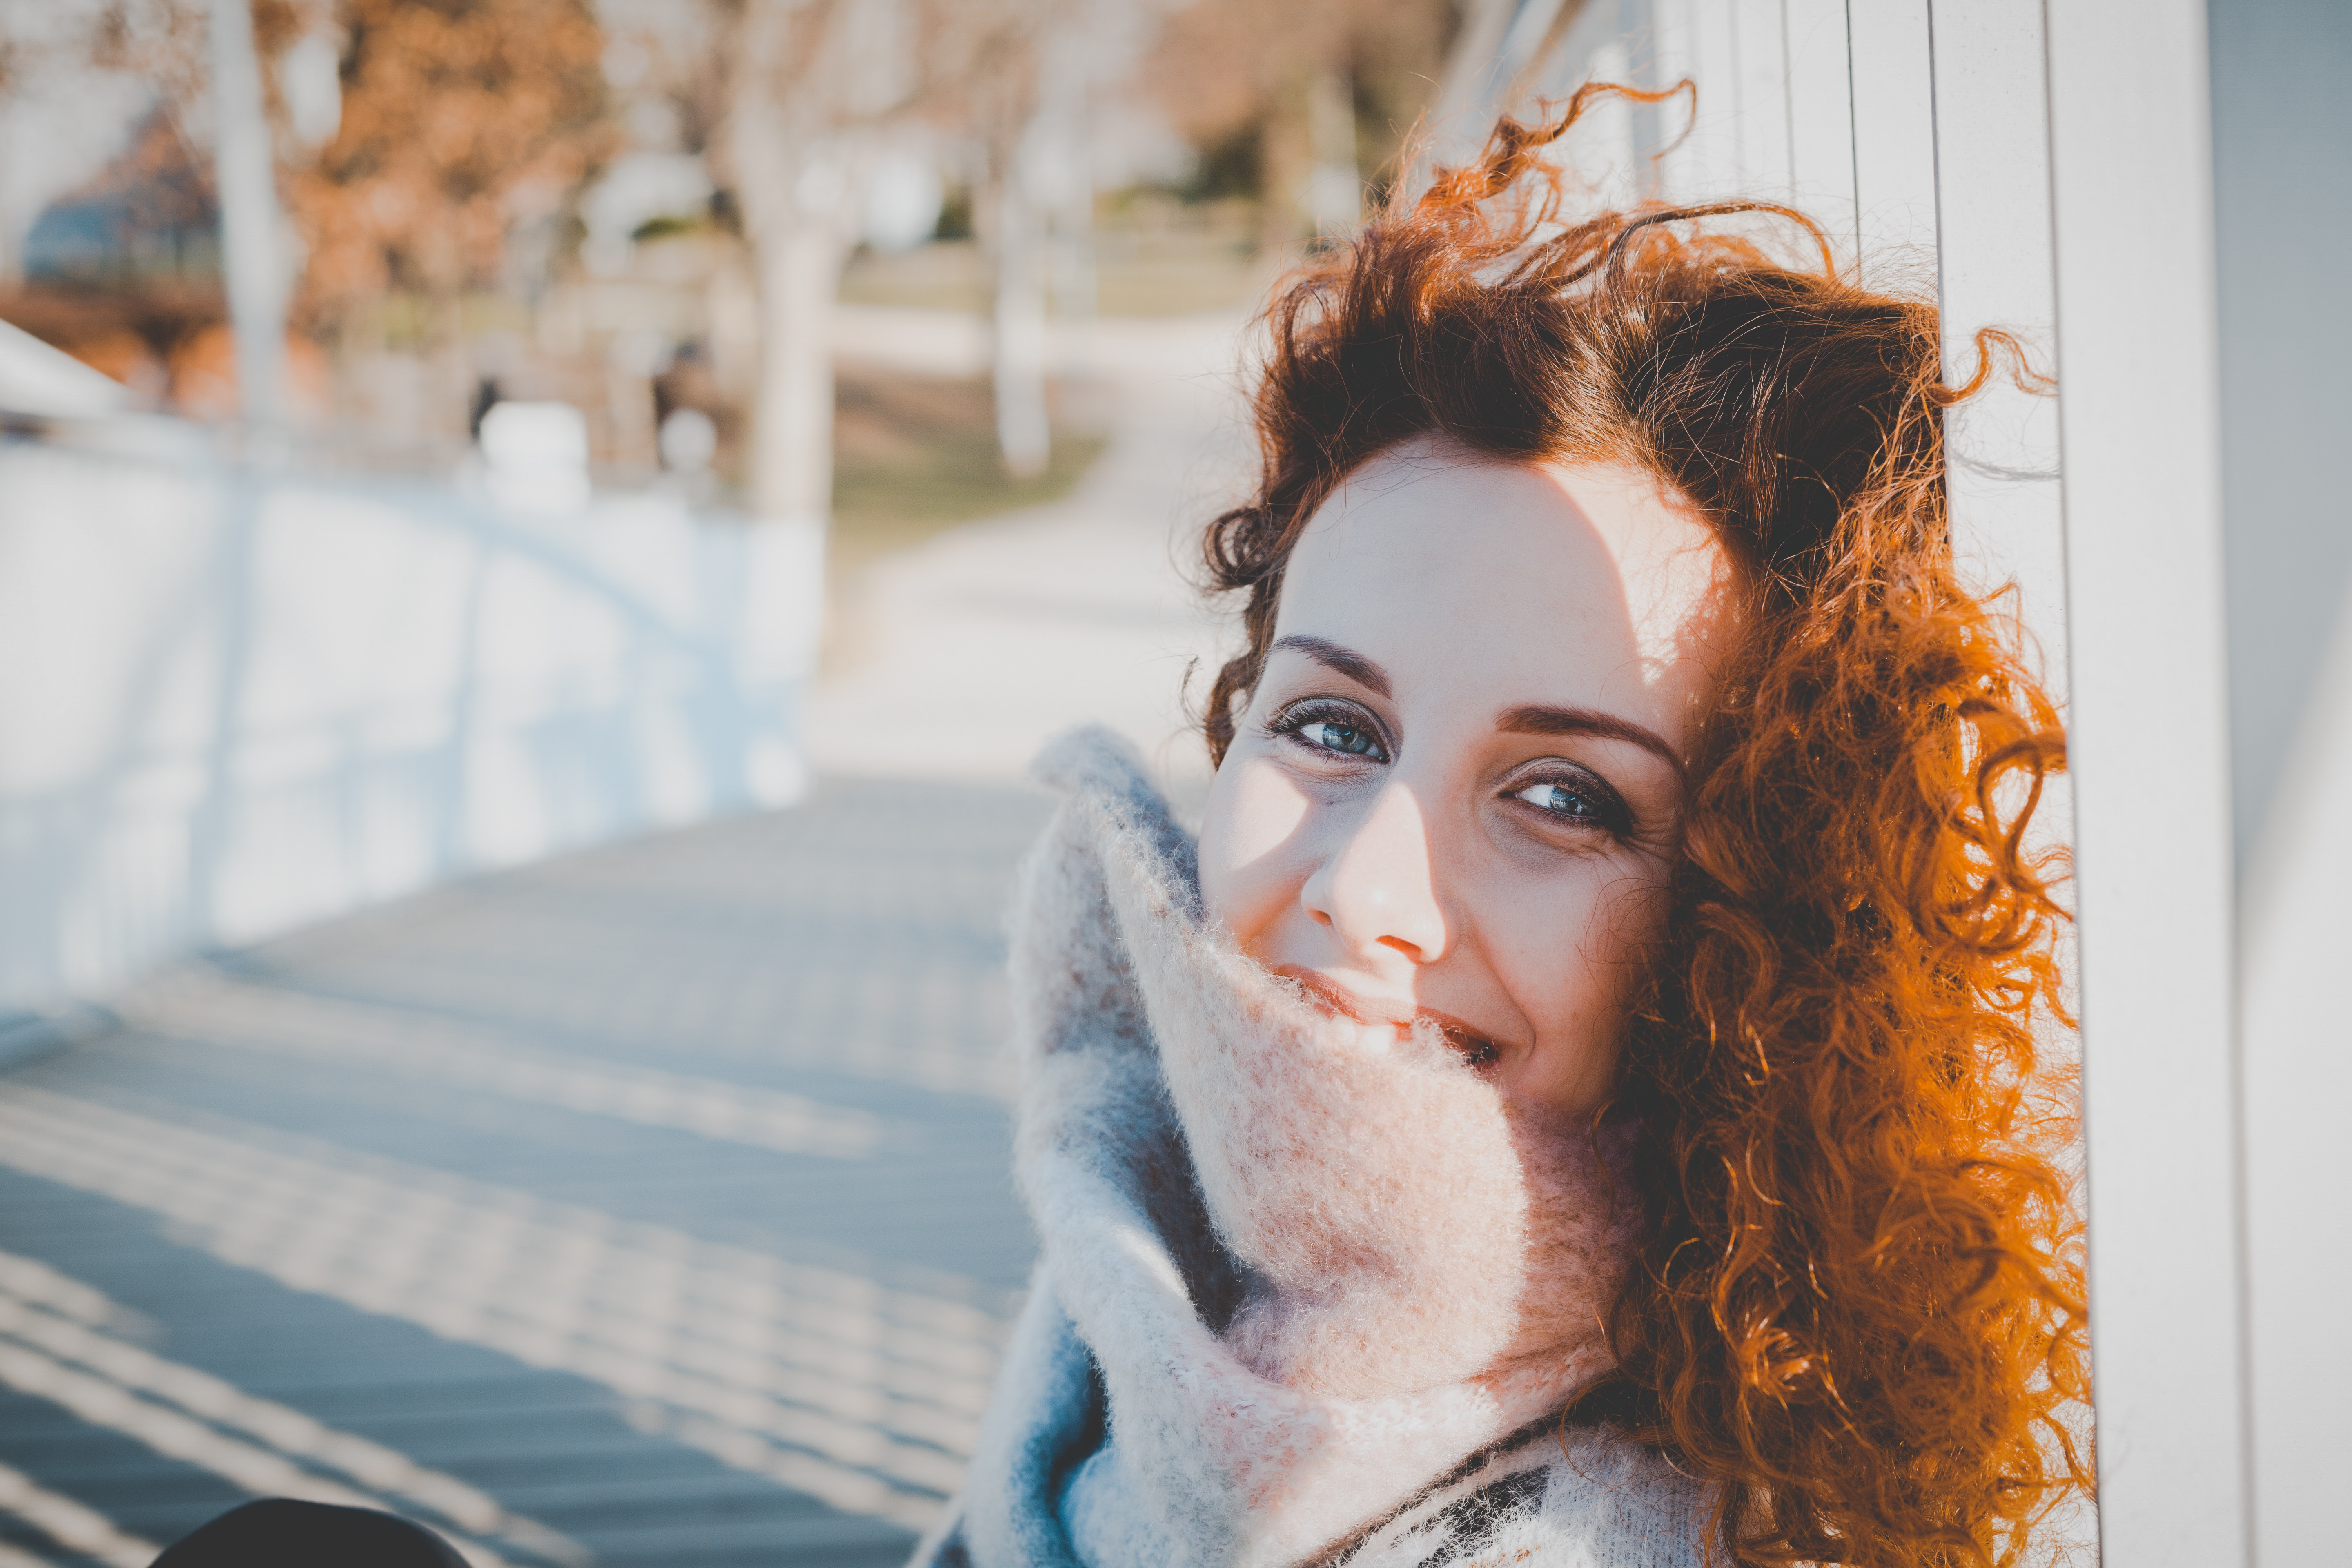 Women Leaning on White Wooden Fence Wearing Gray Furred Top, Person, Young, Woman, Winter, HQ Photo